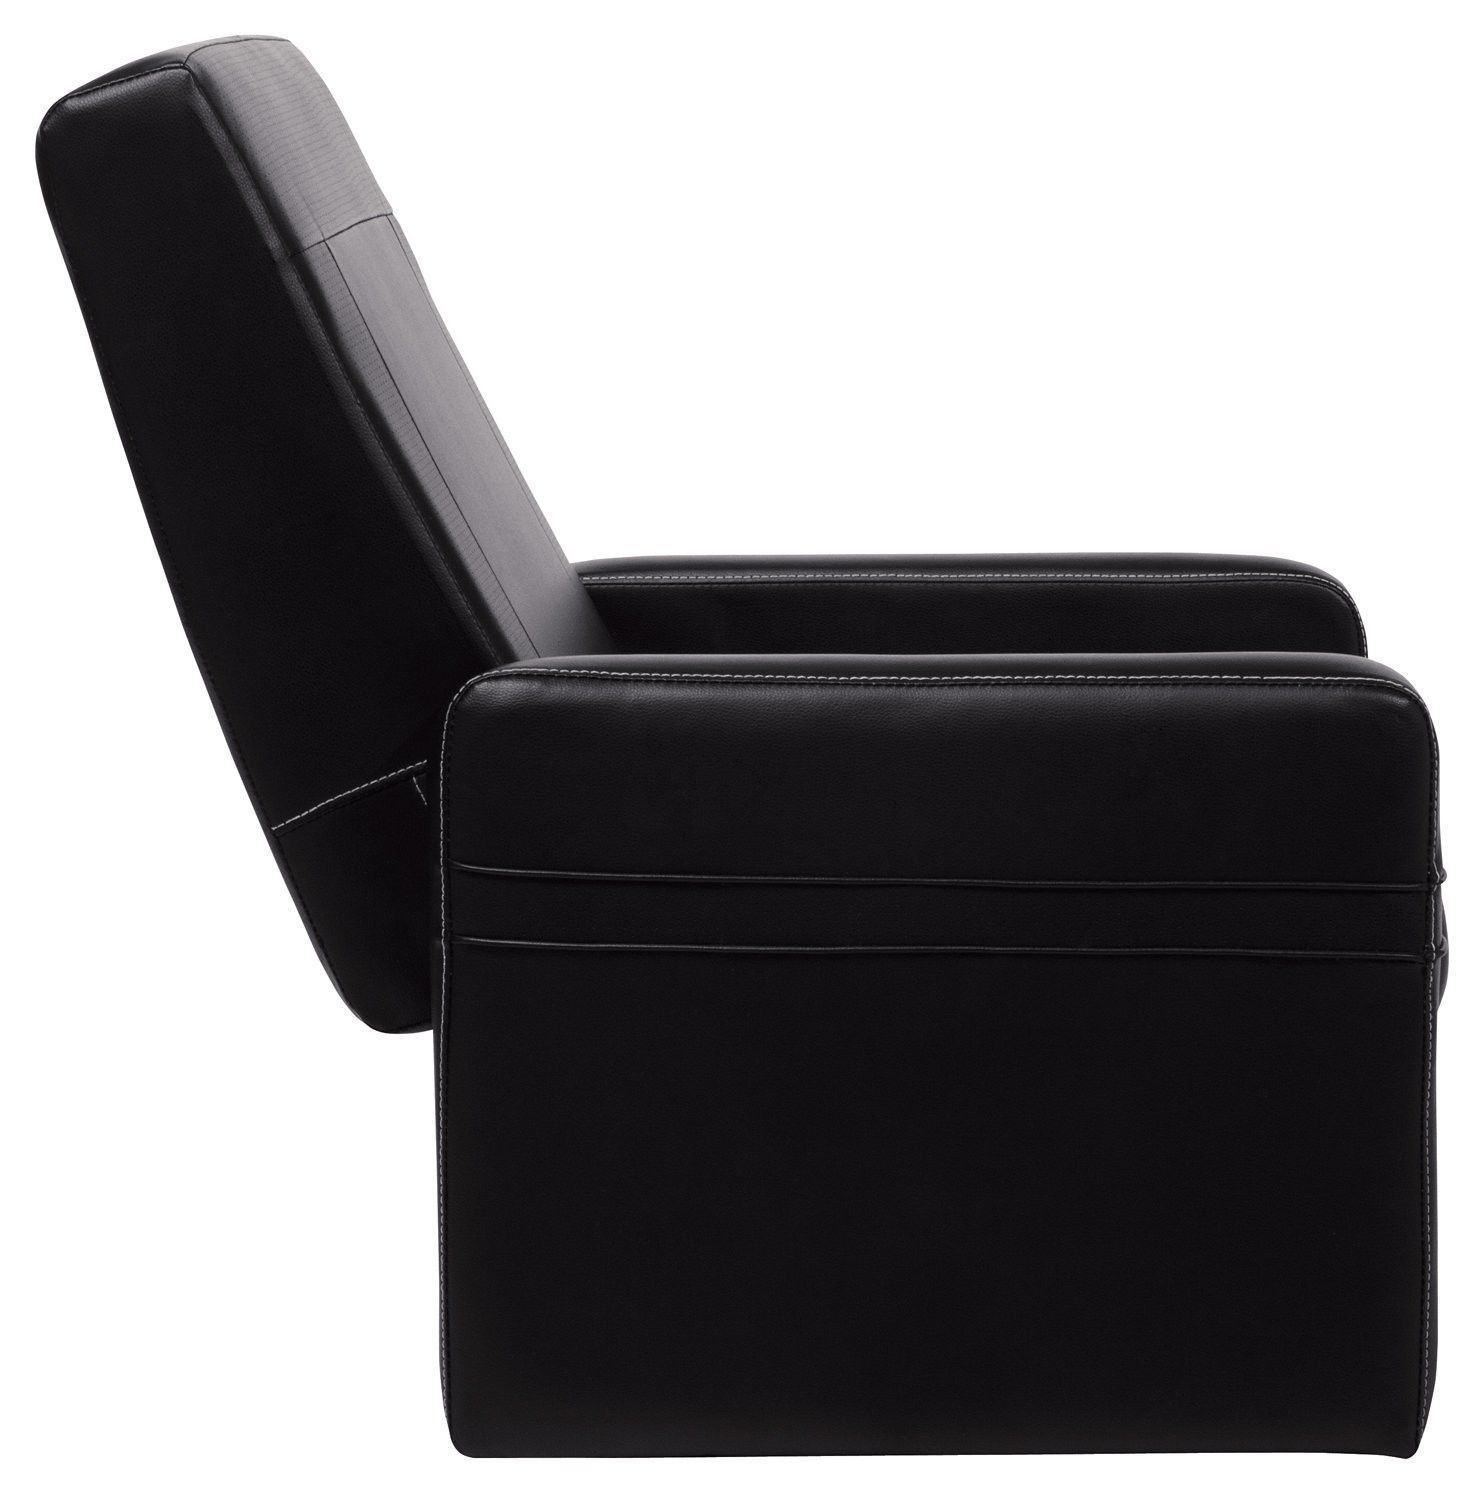 Serta ottoman gaming chair in puresoft black faux leather for Ottoman storage chair